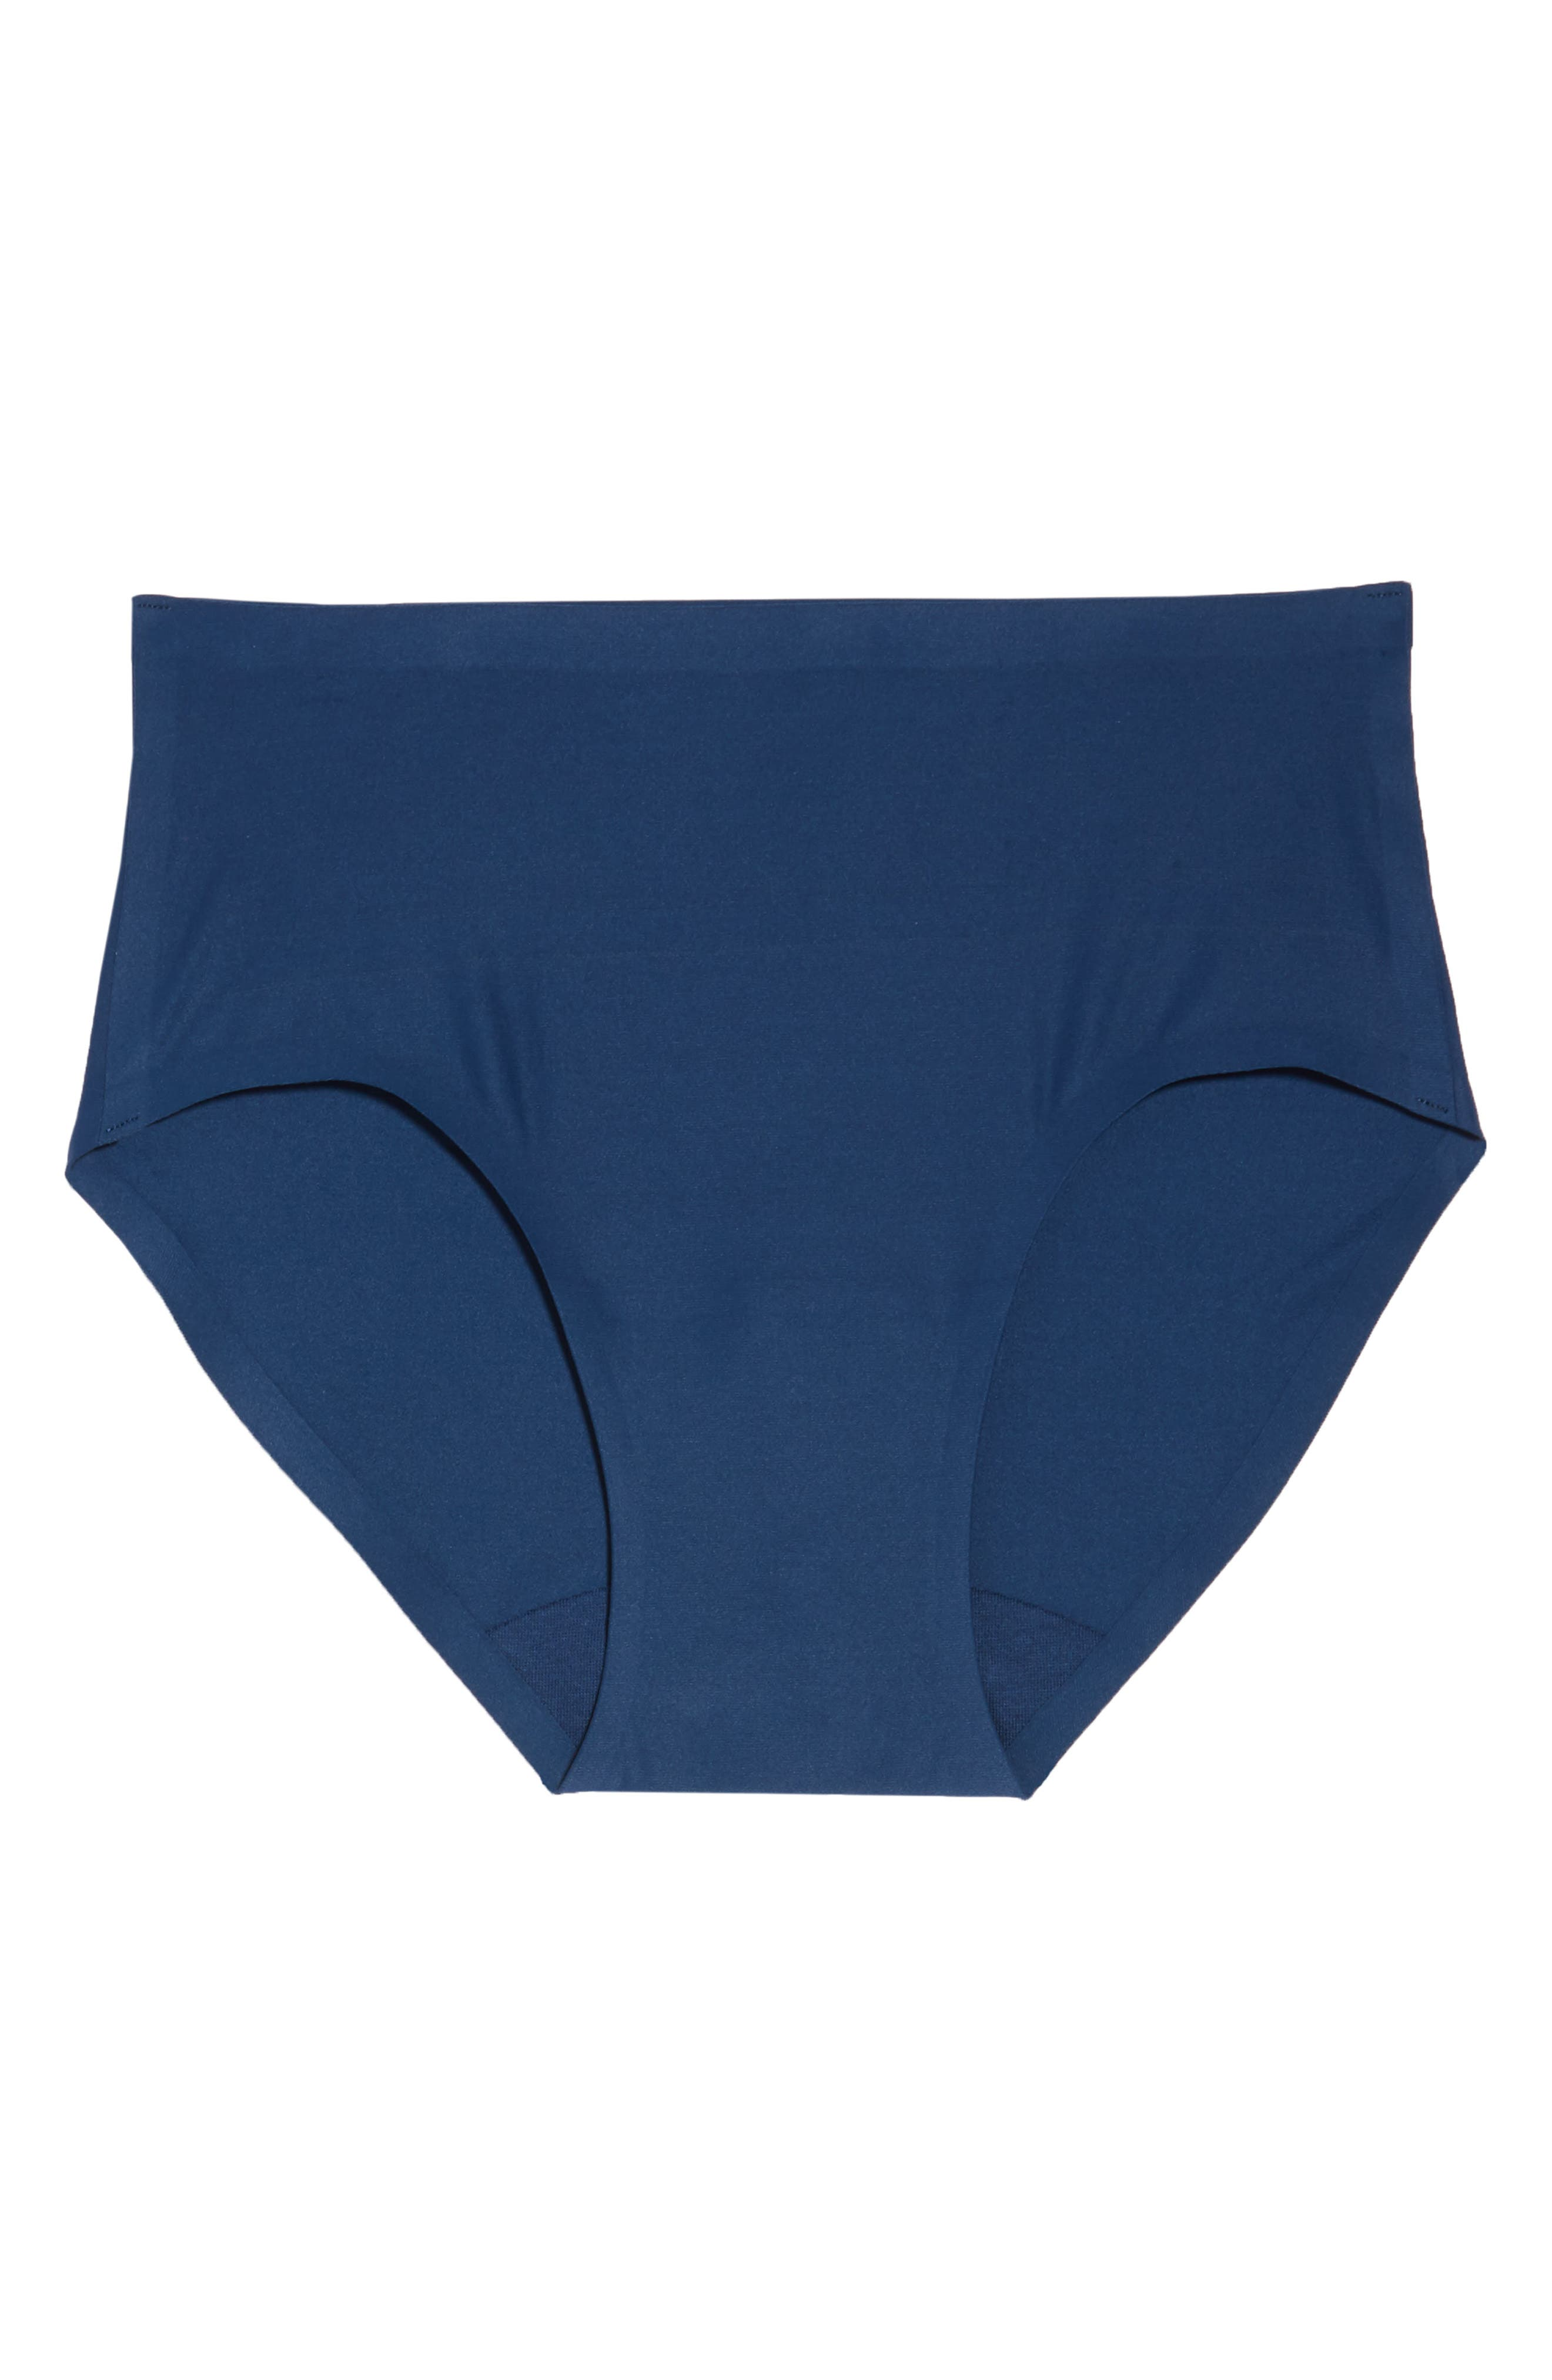 Soft Stretch Seamless Hipster Panties,                             Alternate thumbnail 6, color,                             DEEP BLUE